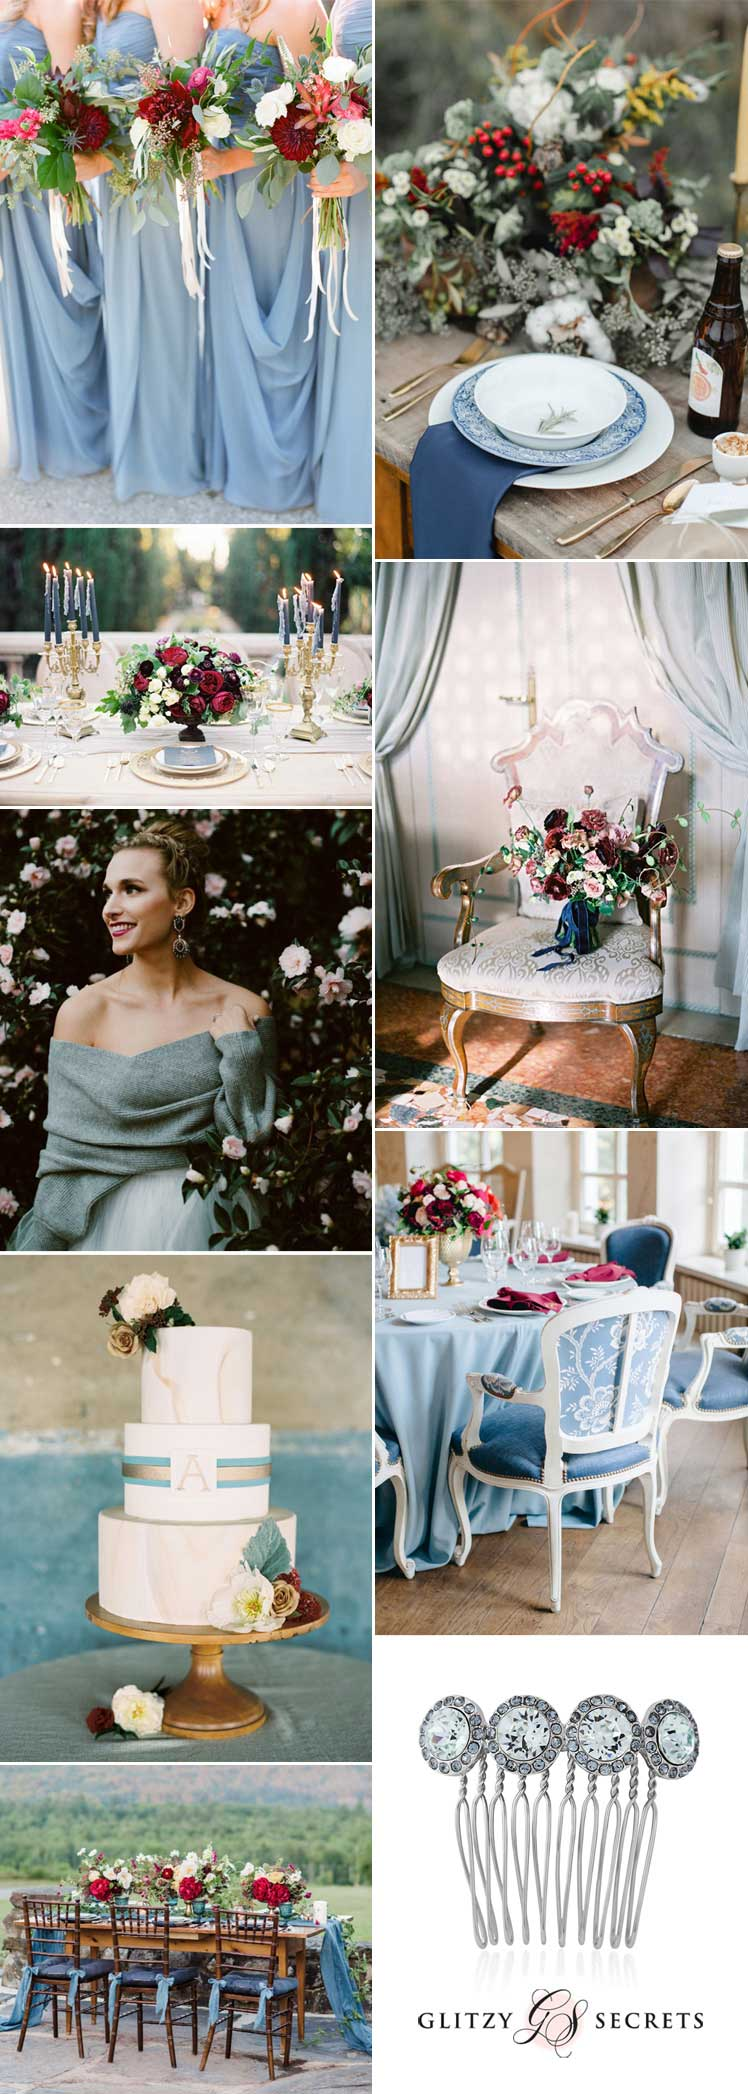 Blue and burgundy wedding inspiration